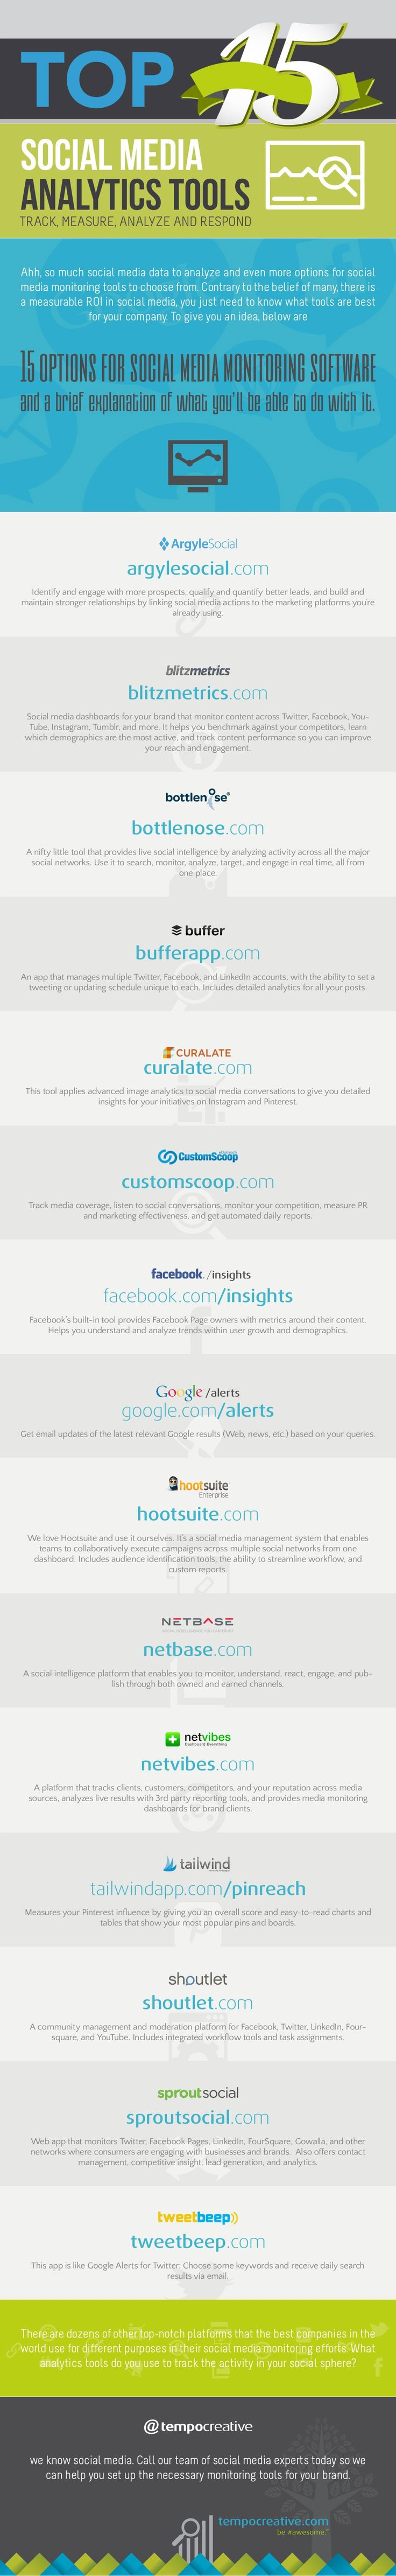 [INFOGRAPHIC] Top 15 Social Media Analytics Tools—Track, Measure, Analyze, Respond: ArgyleSocial; Blitzmetrics; Bottlenose; Buffer; Curalate; CustomScoop; Facebook Insights; Google Alerts; Hootsuite; Netbase; Netvibes; Tailwind; Shoutlet; SproutSocial; TweetBeep; Details.